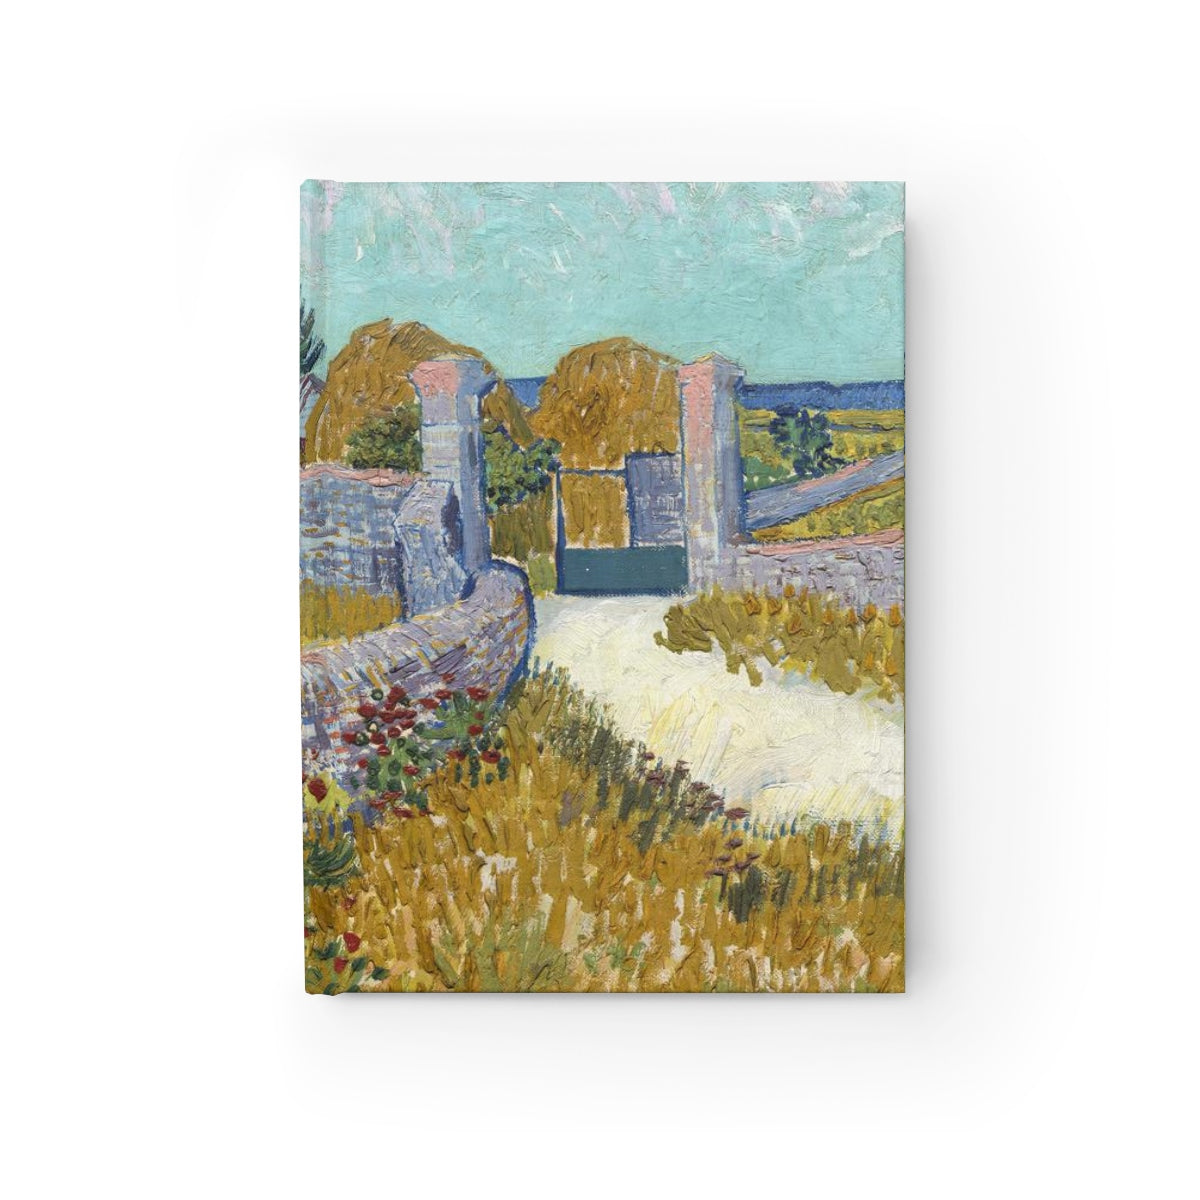 Farmhouse in Provence [1888] B6 Art Journal - Vincent Van Gogh Kiaroskuro Decor- Canvas Prints, Home Décor & Fashion